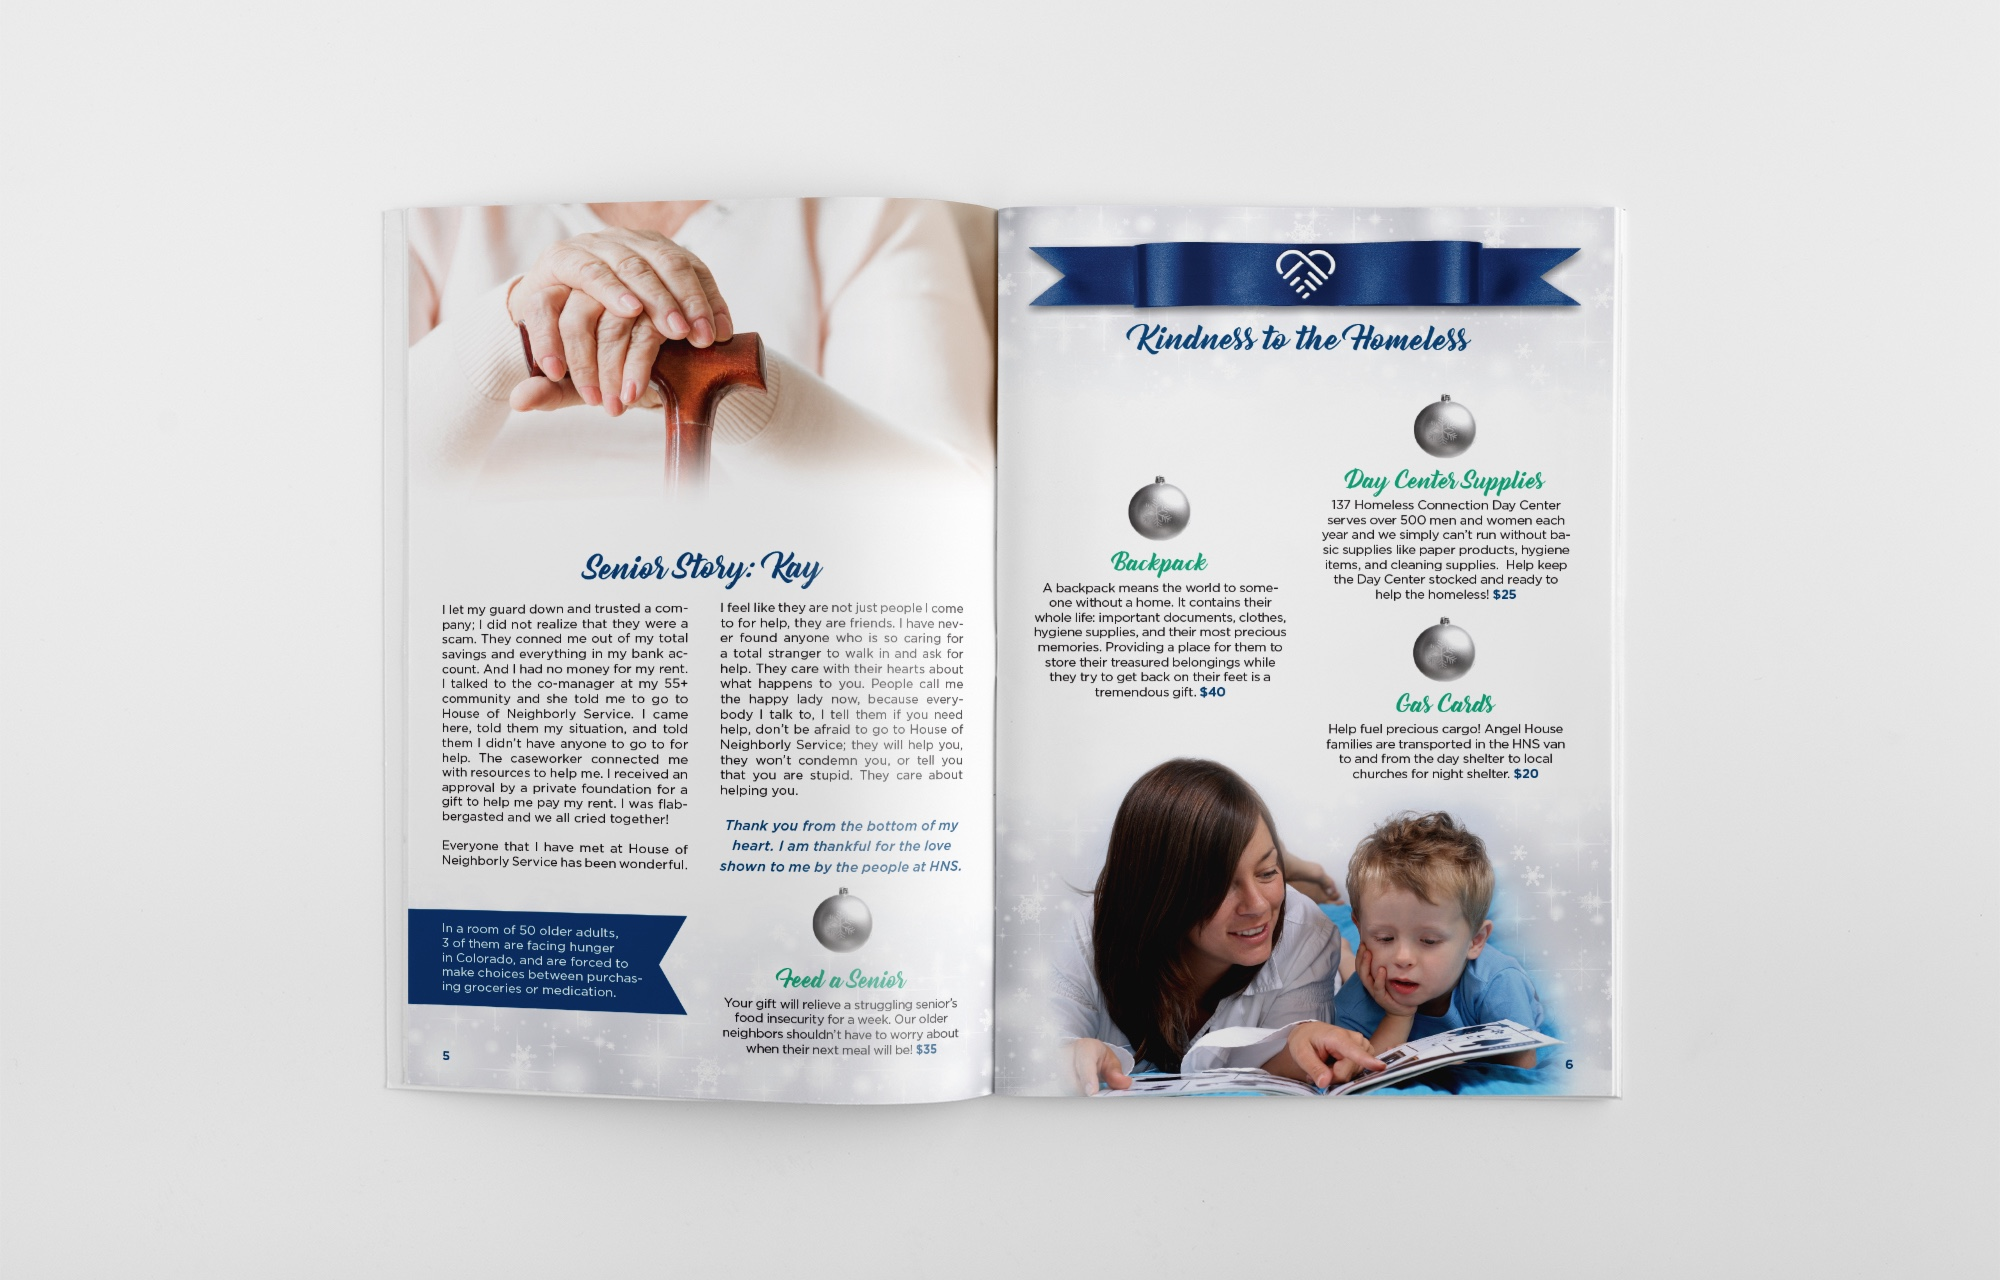 bafdc233c Hns Gift Catalog 2018 Awesomesauce Creative Llc Graphic Design